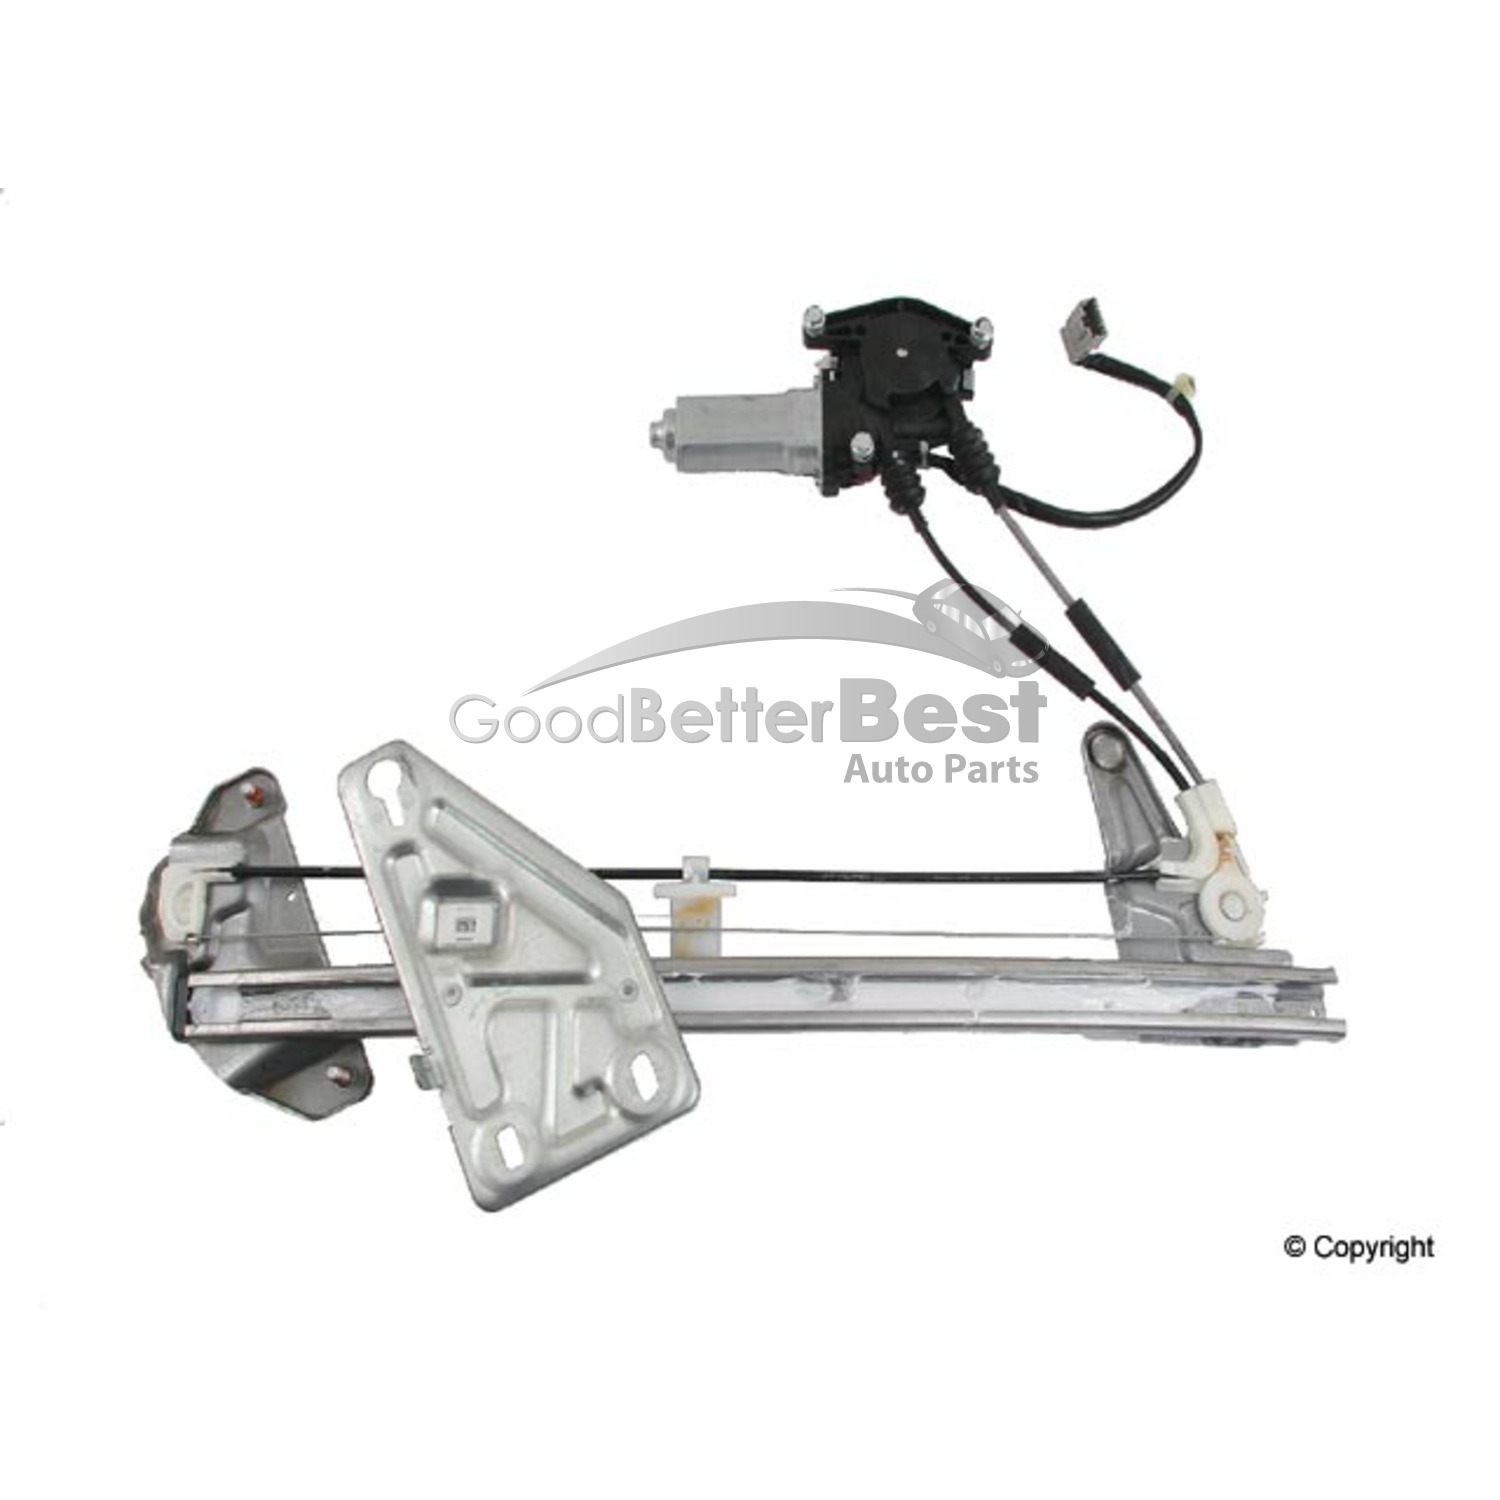 New Genuine Power Window Motor And Regulator Assembly